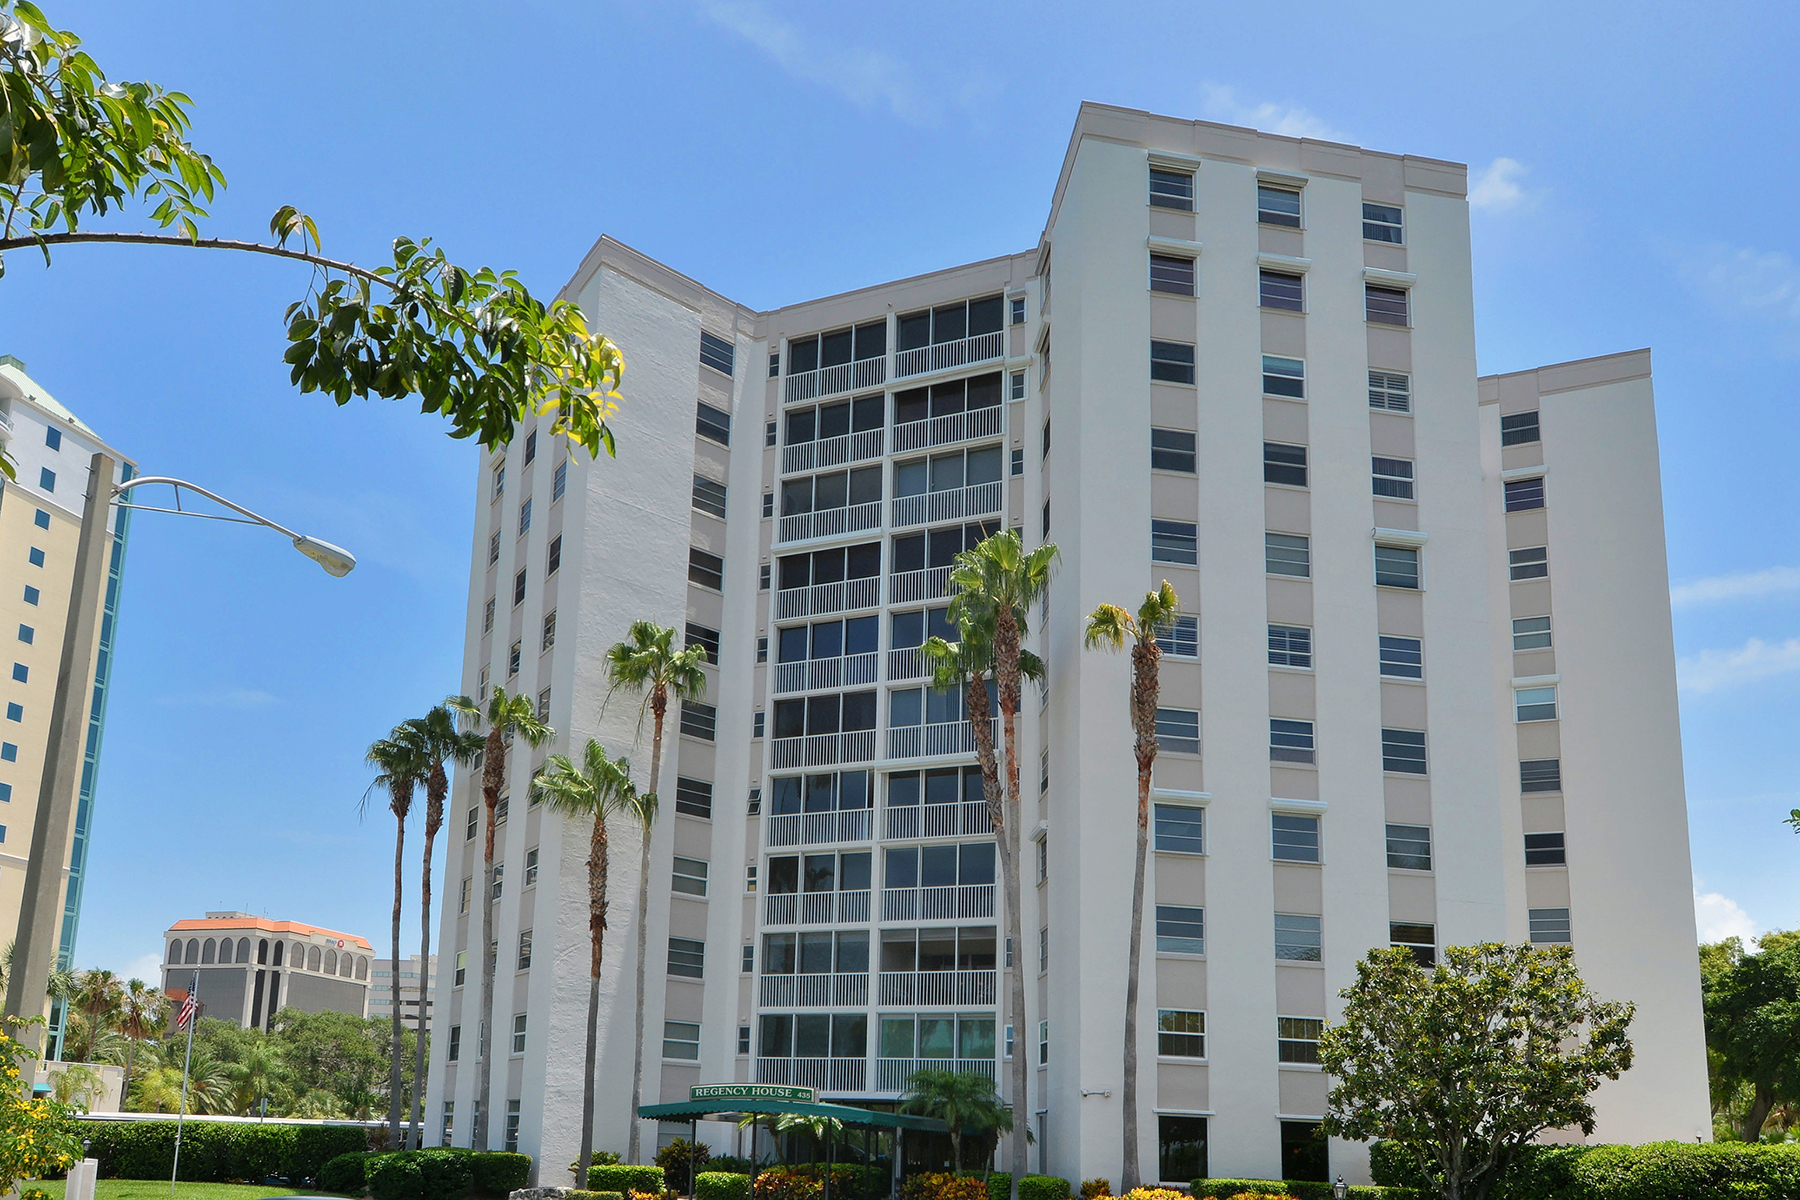 Condominium for Sale at REGENCY HOUSE 435 S Gulfstream Ave 404 Sarasota, Florida, 34236 United States